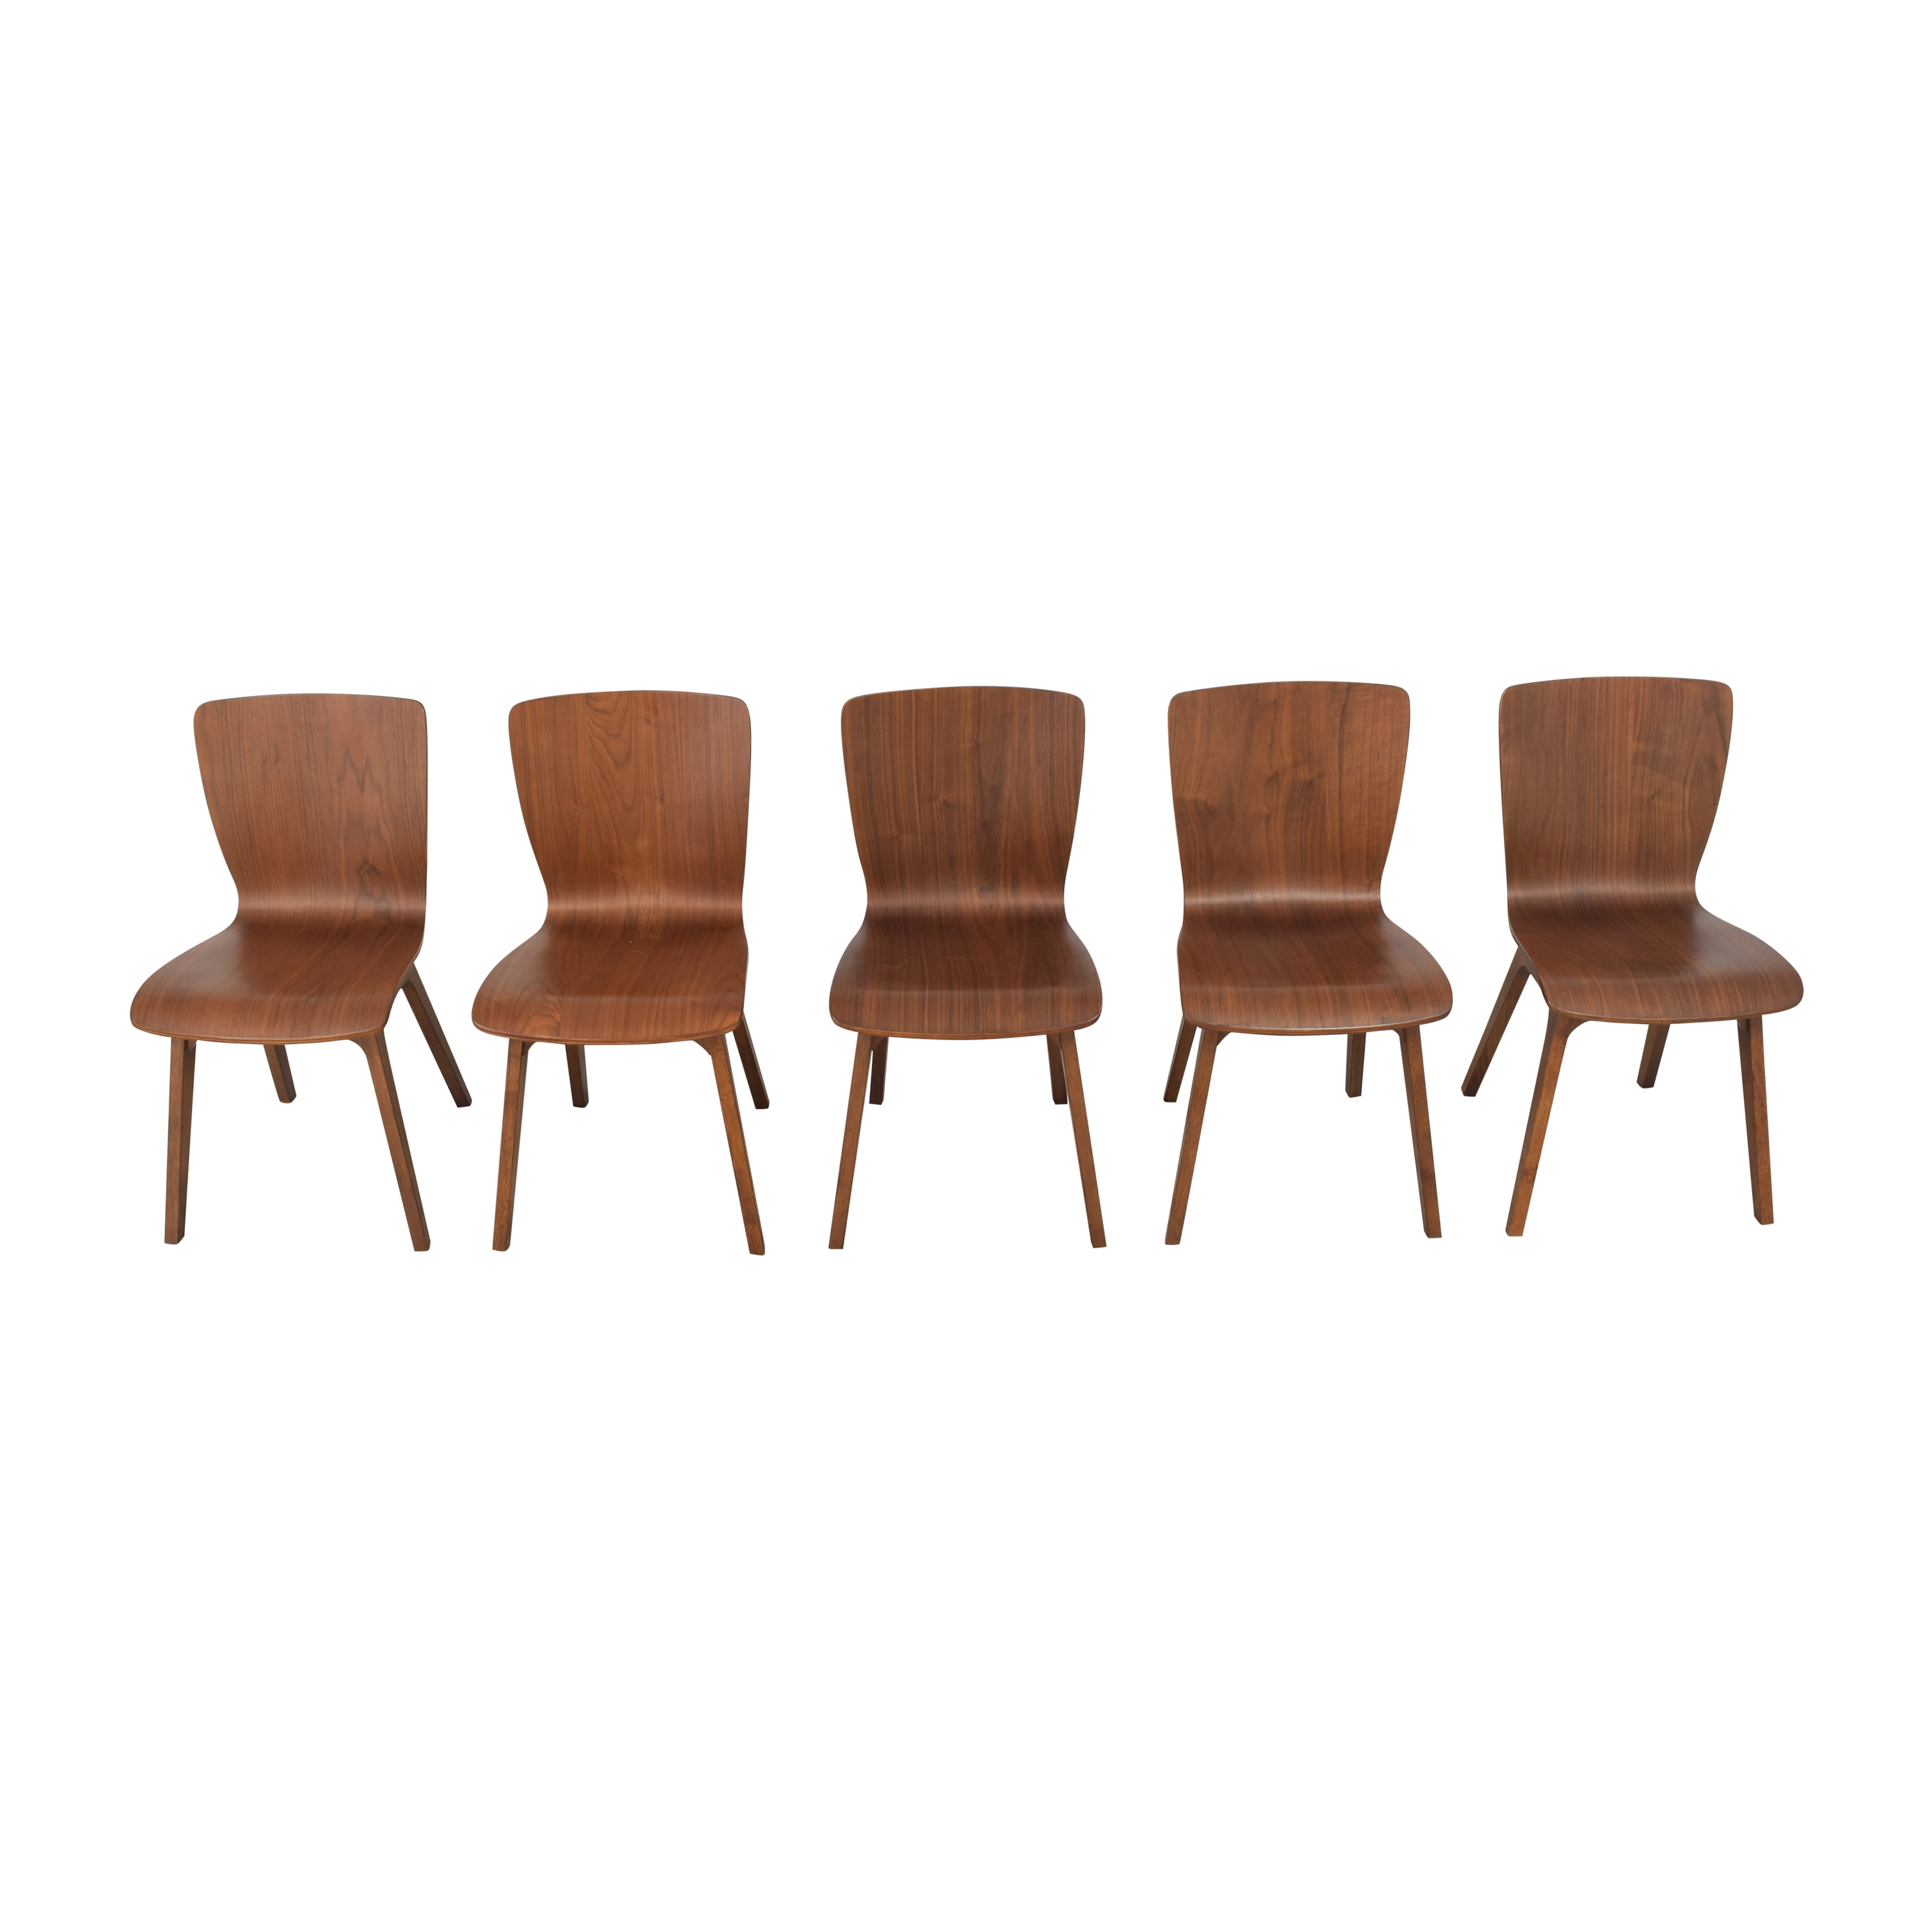 West Elm West Elm Crest Bentwood Dining Chairs on sale